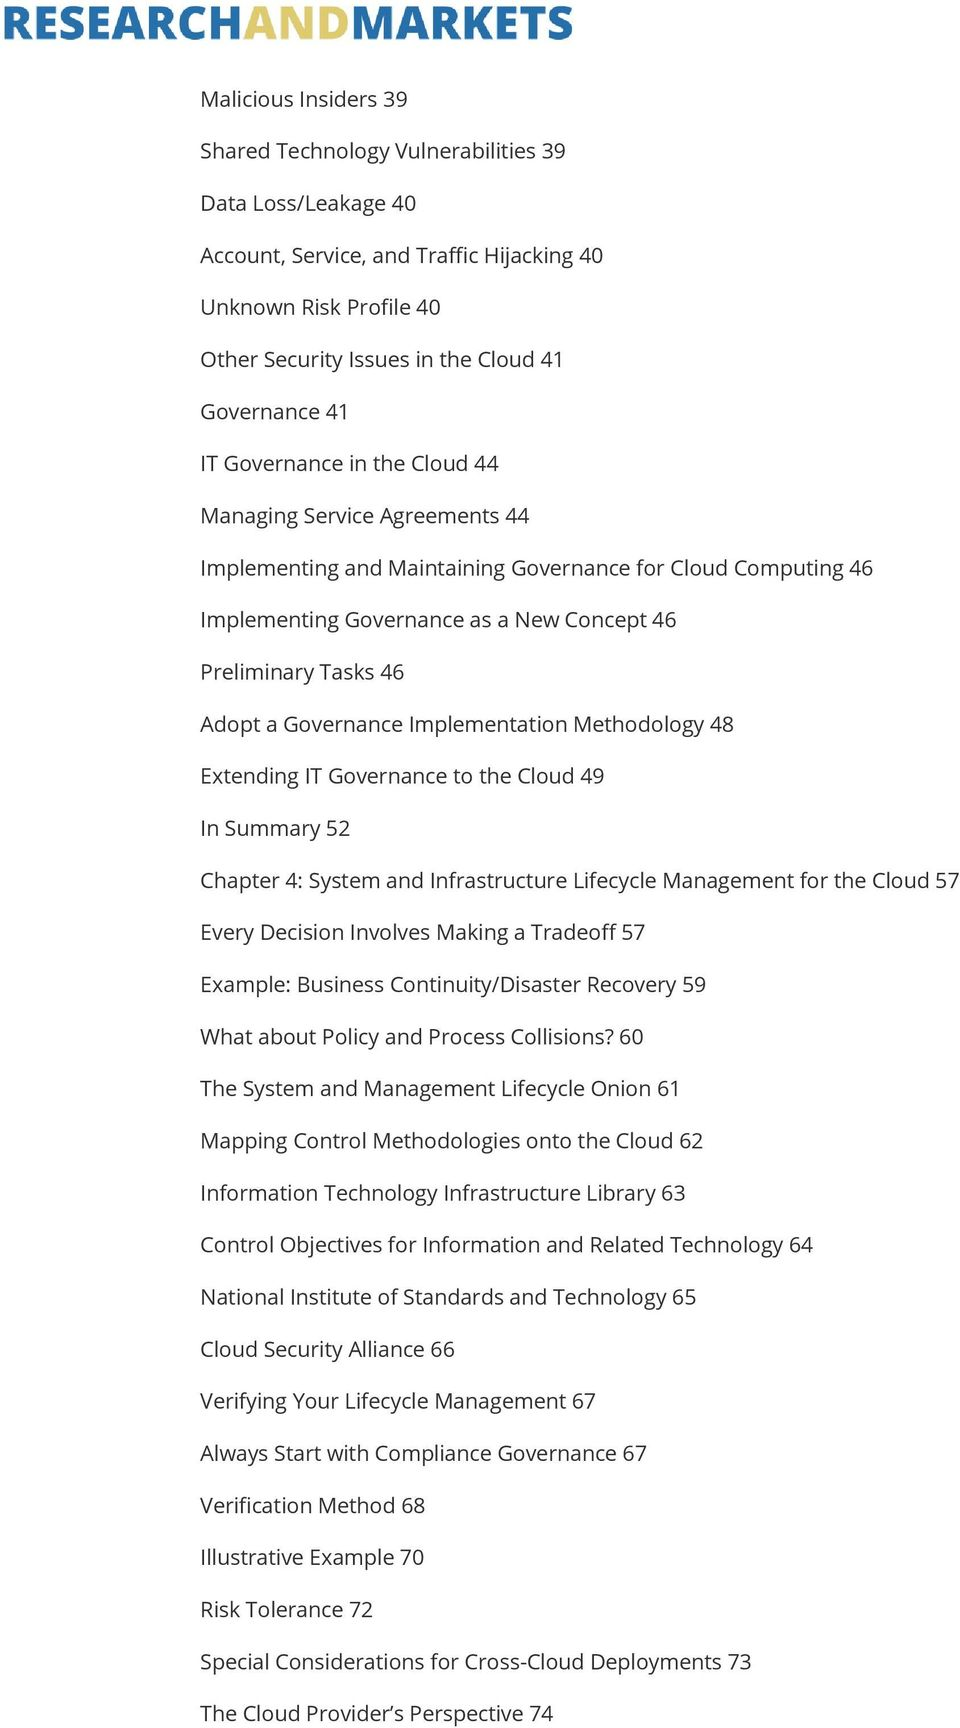 Governance Implementation Methodology 48 Extending IT Governance to the Cloud 49 In Summary 52 Chapter 4: System and Infrastructure Lifecycle Management for the Cloud 57 Every Decision Involves